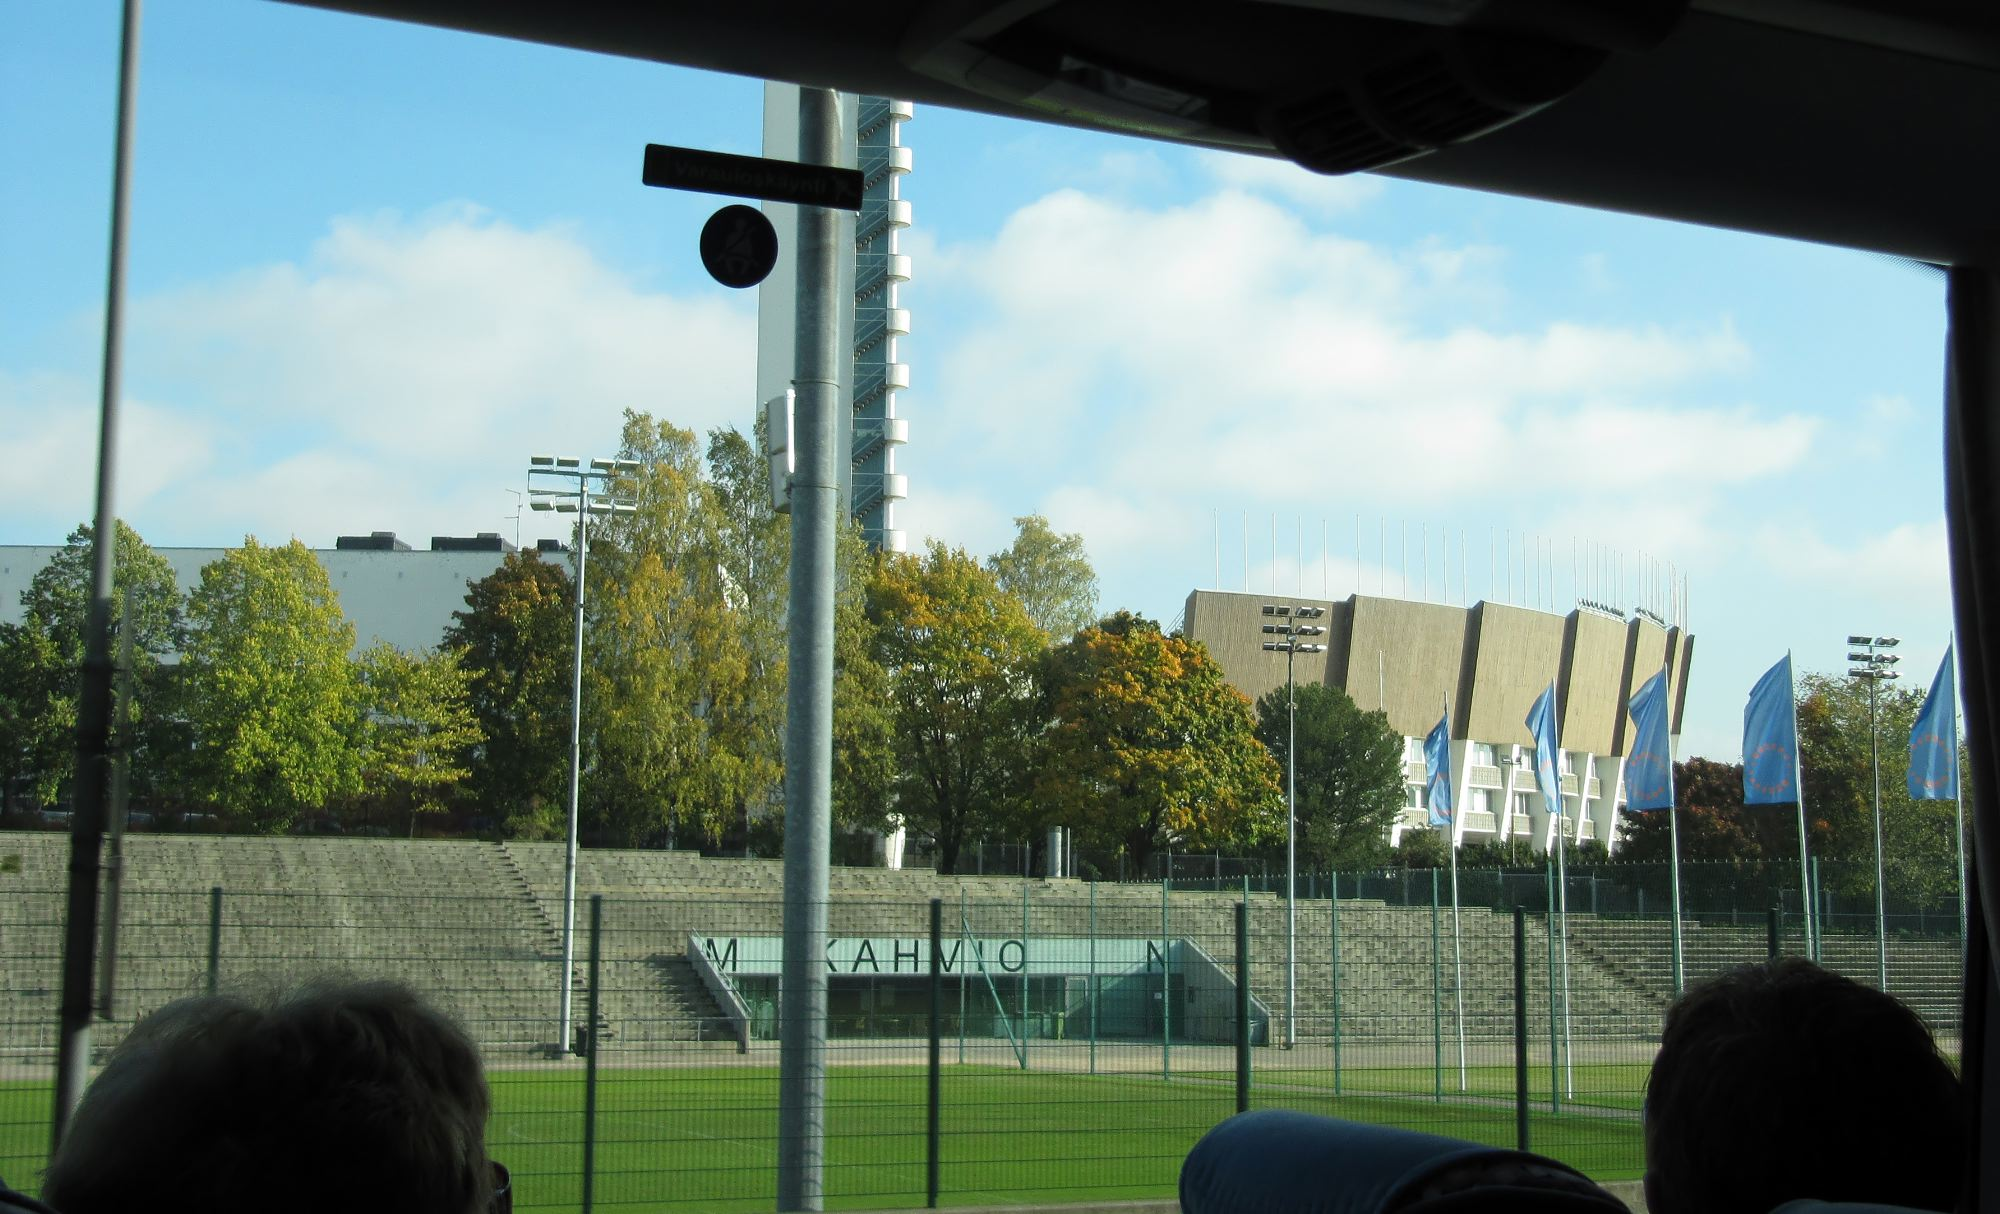 Olympic Stadium, from the 1952 Helsinki Olympics